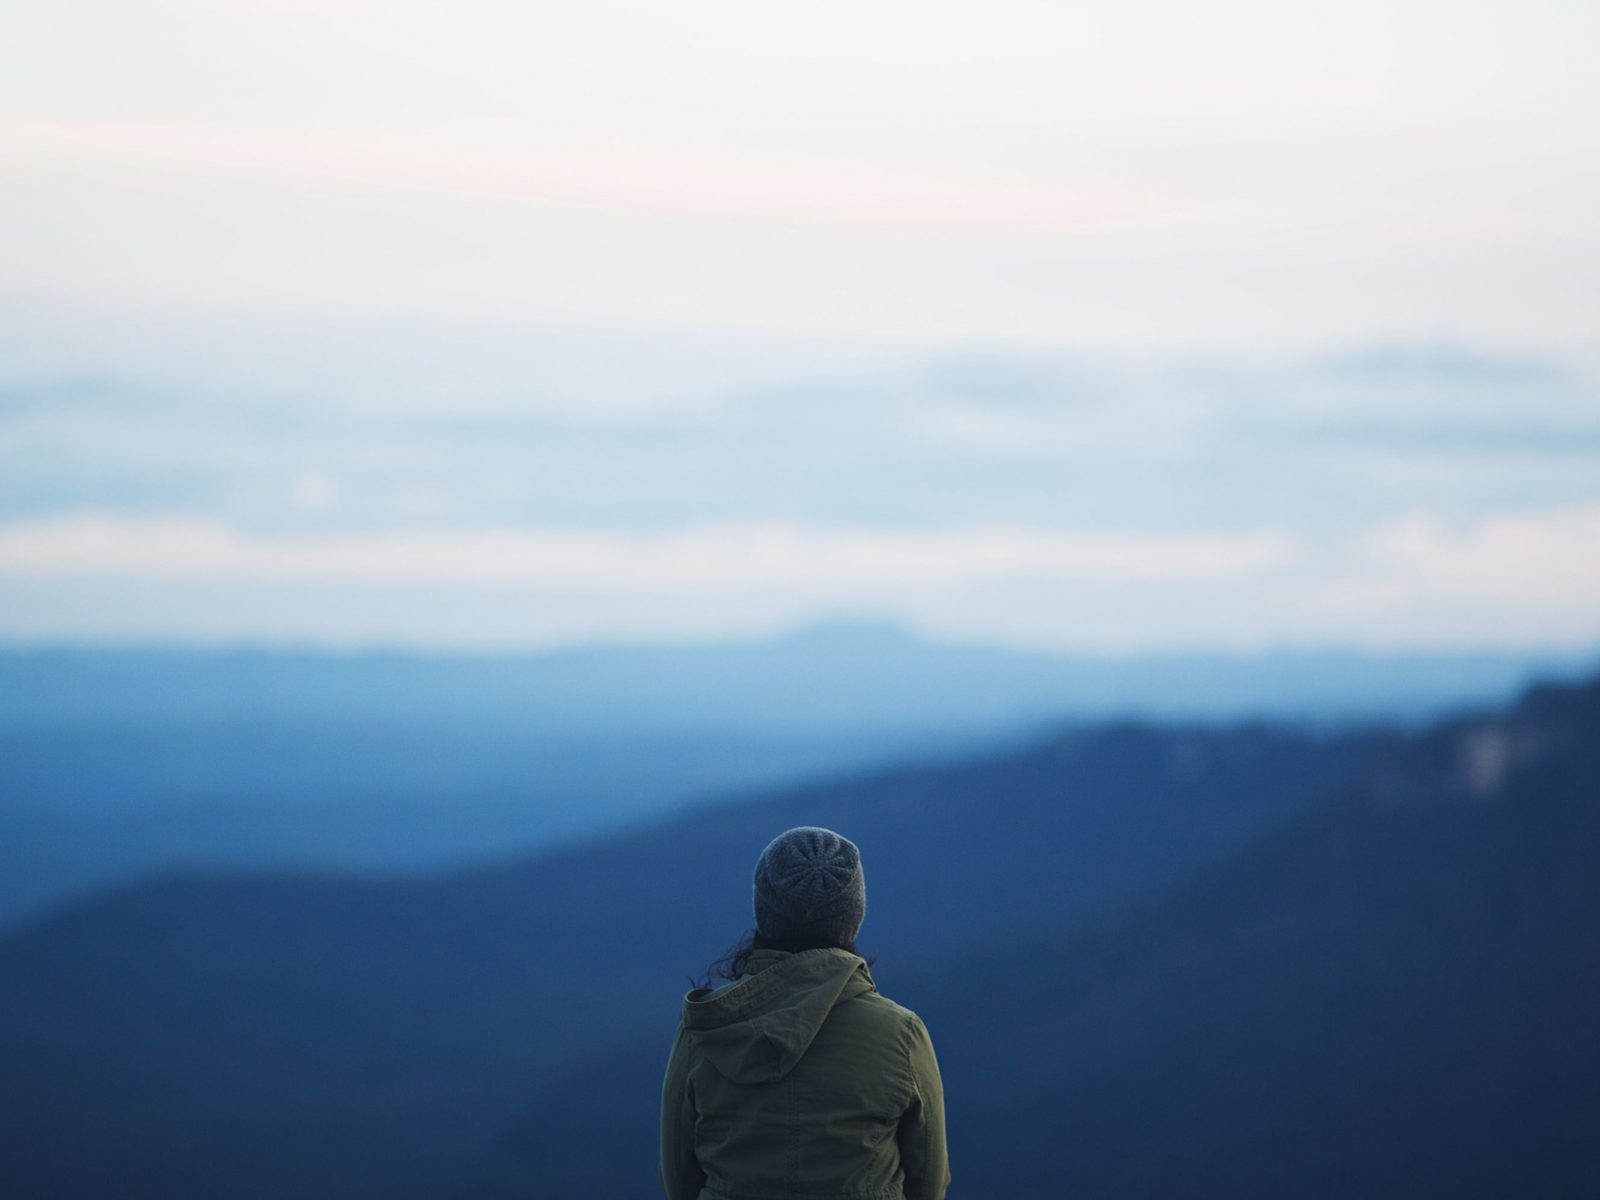 Person overlooking the blue mountains backdrop